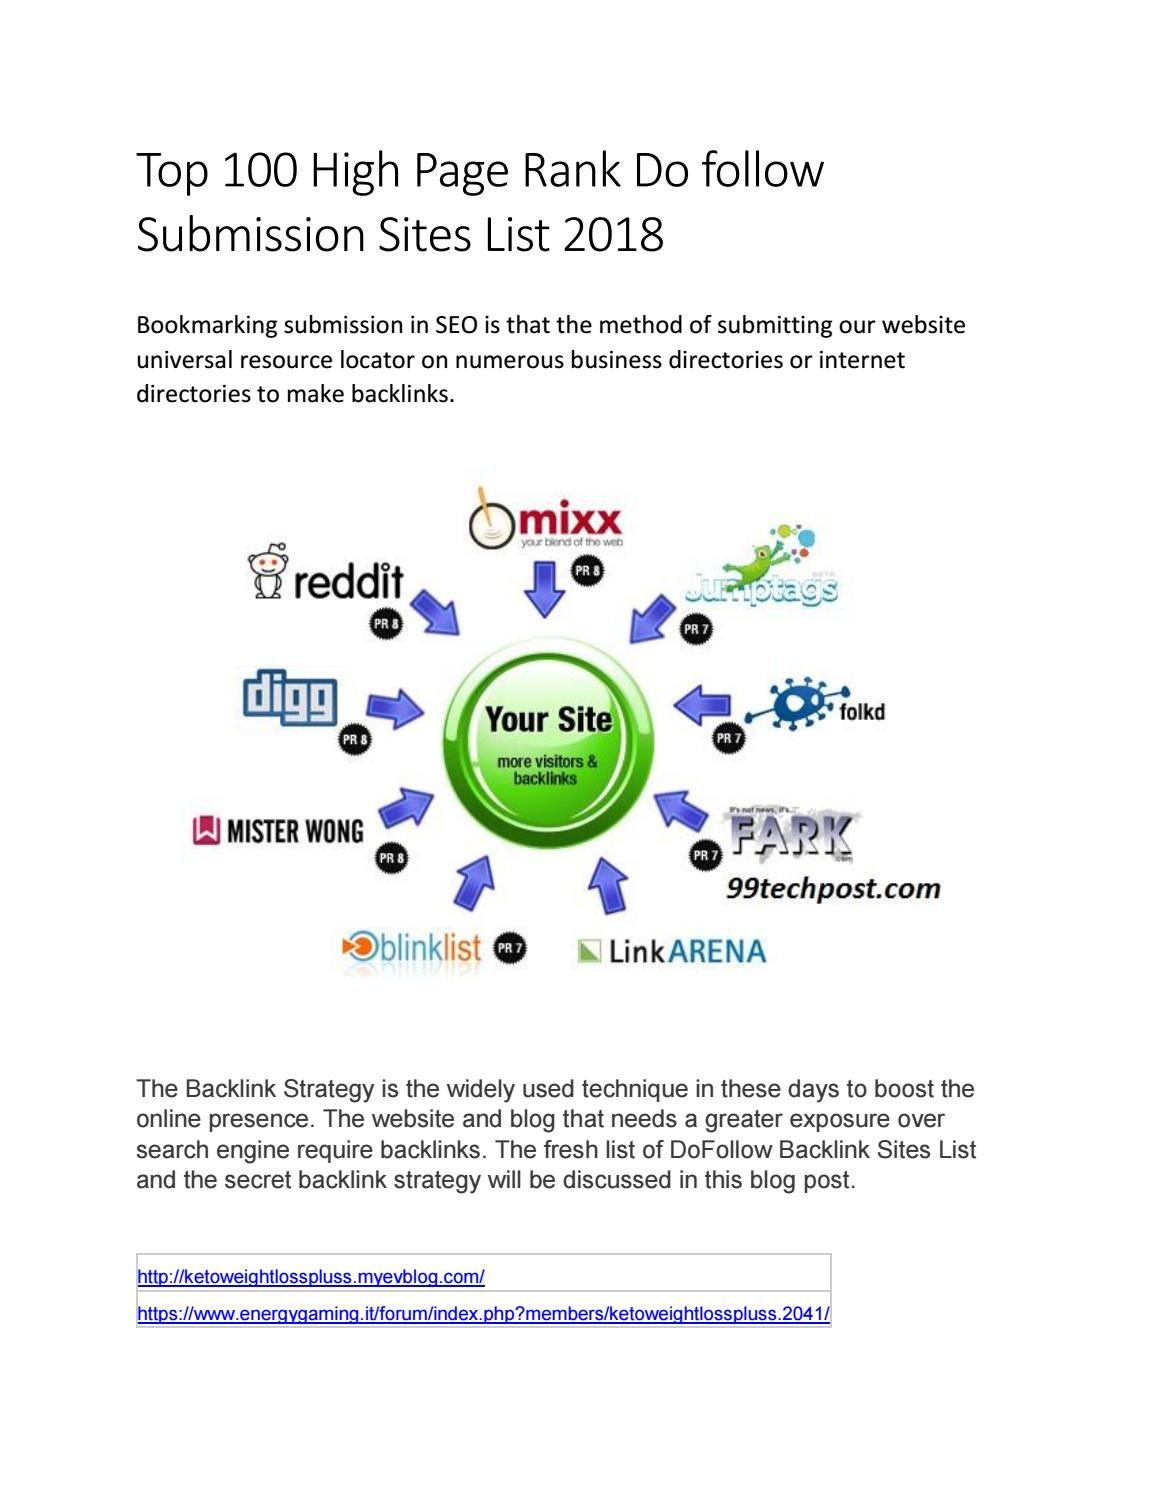 Top 100 High Page Rank Do follow Submission Sites List 2018